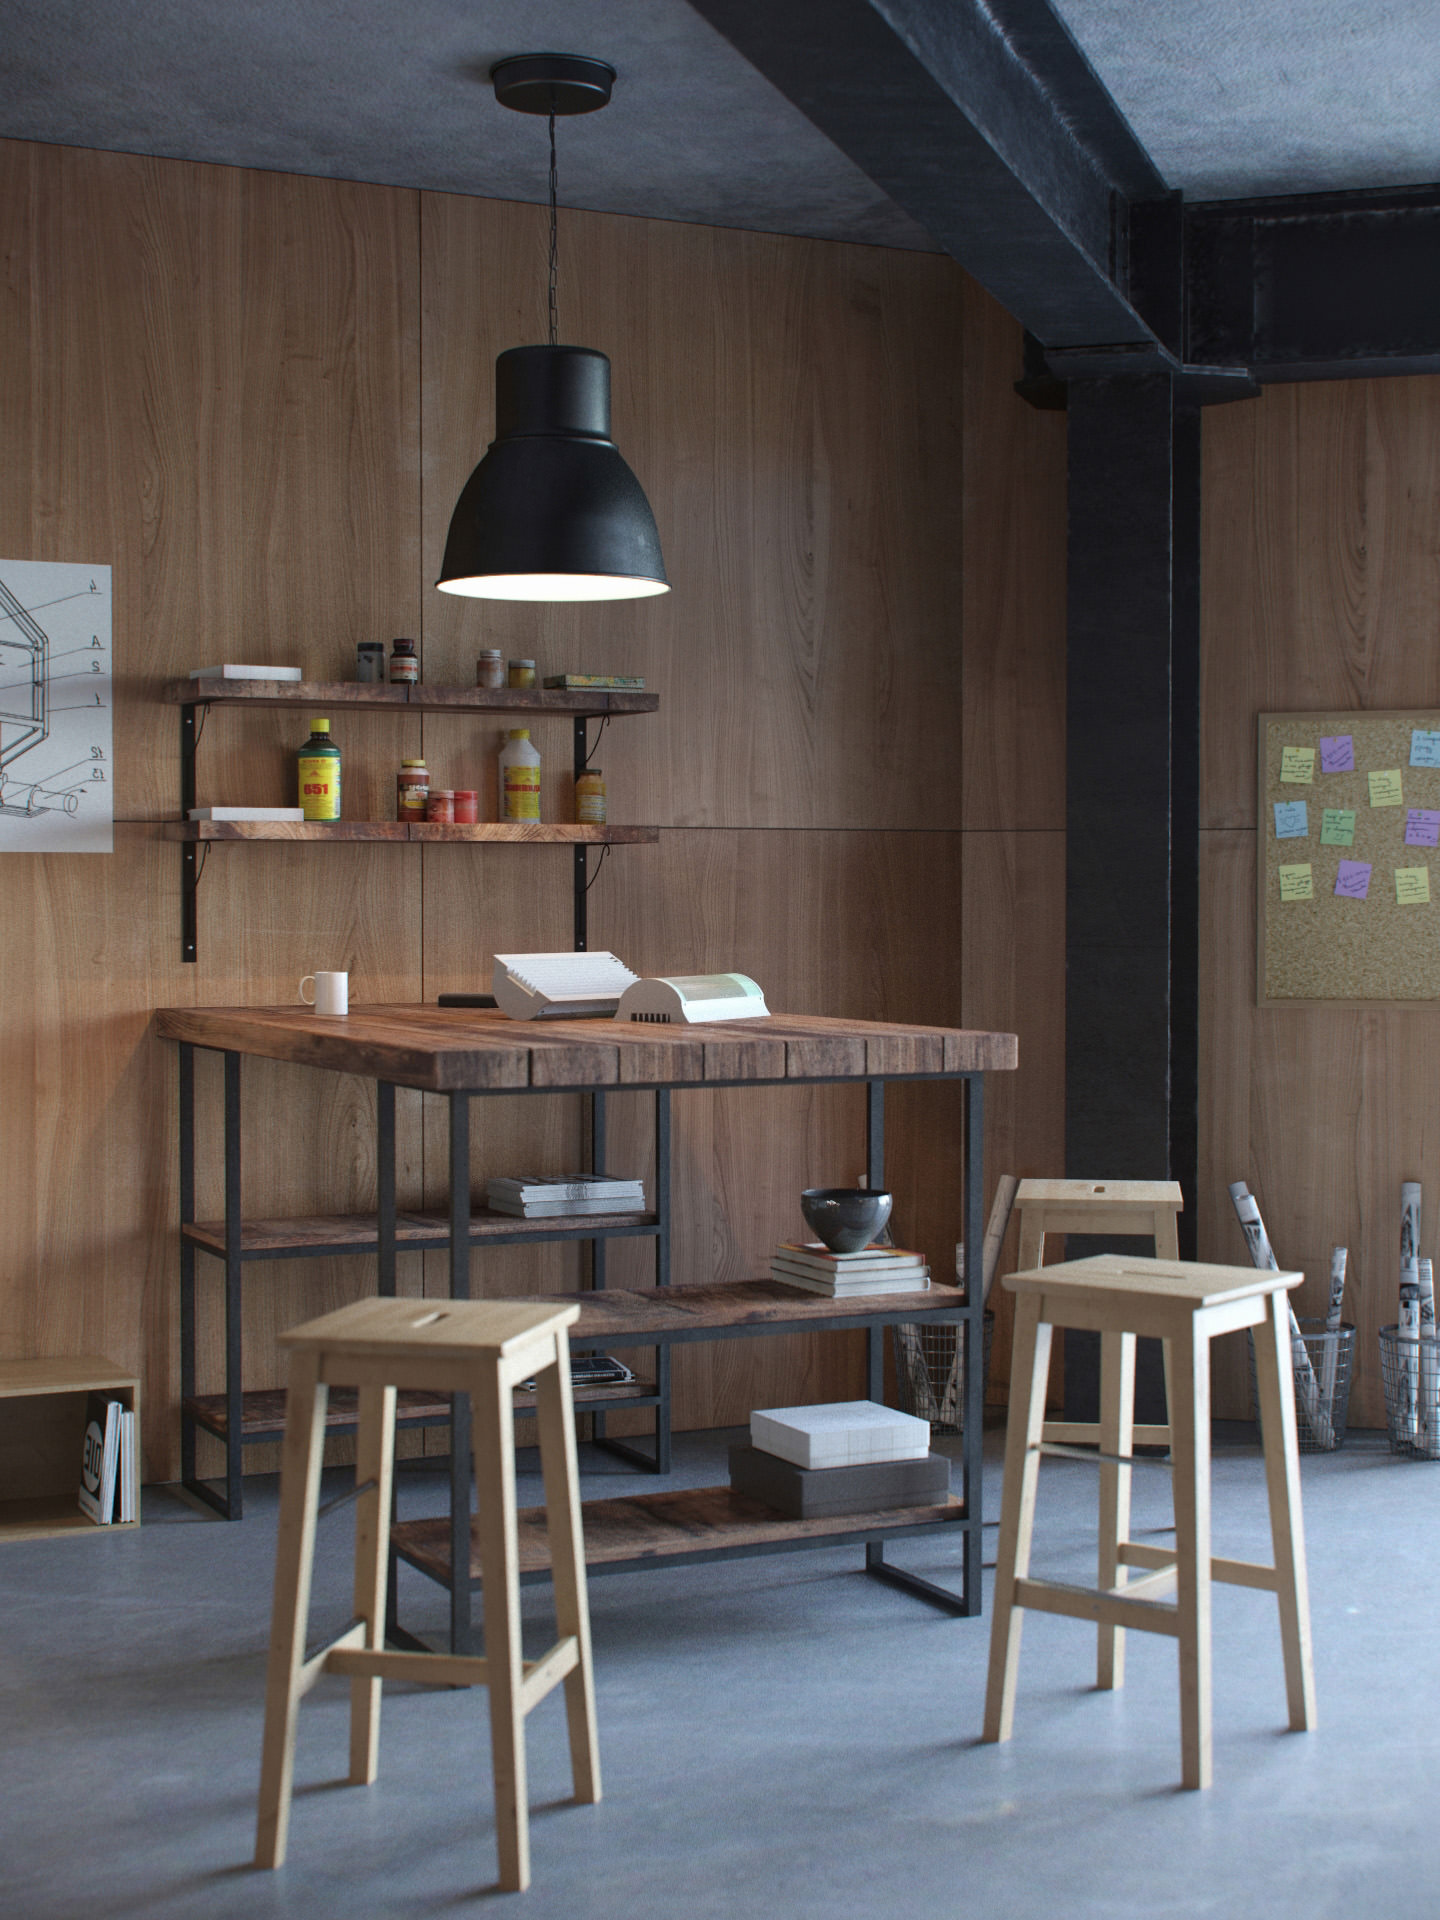 3D interior visualization of a seating area with shelves in the corner of the factory workshop